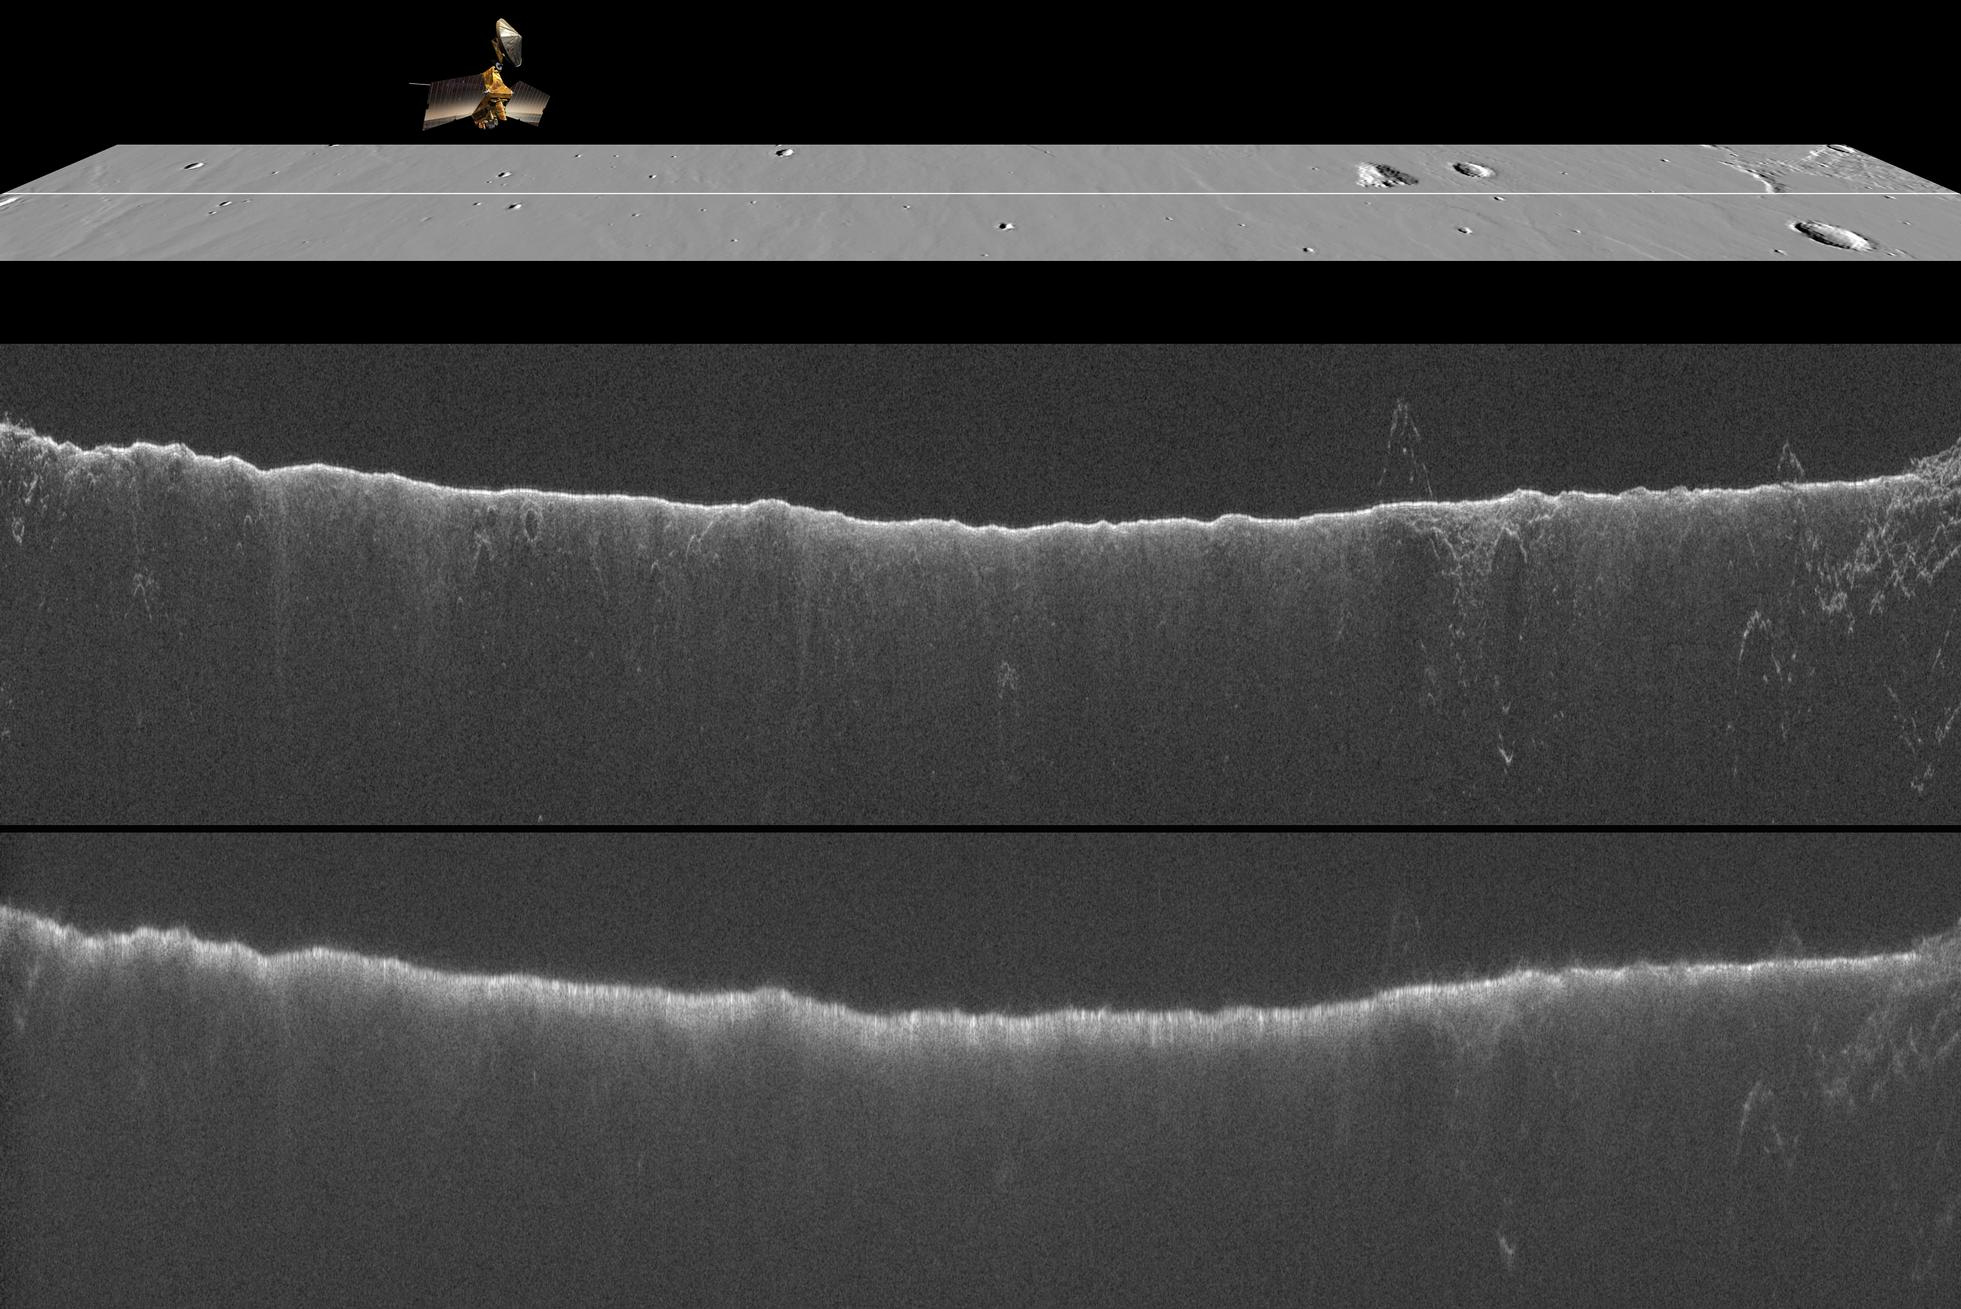 A comparison of two radargrams from the SHARAD instrument on NASA's Mars Reconnaissance Orbiter shows effects on the Martian ionosphere from the close passage of a comet.